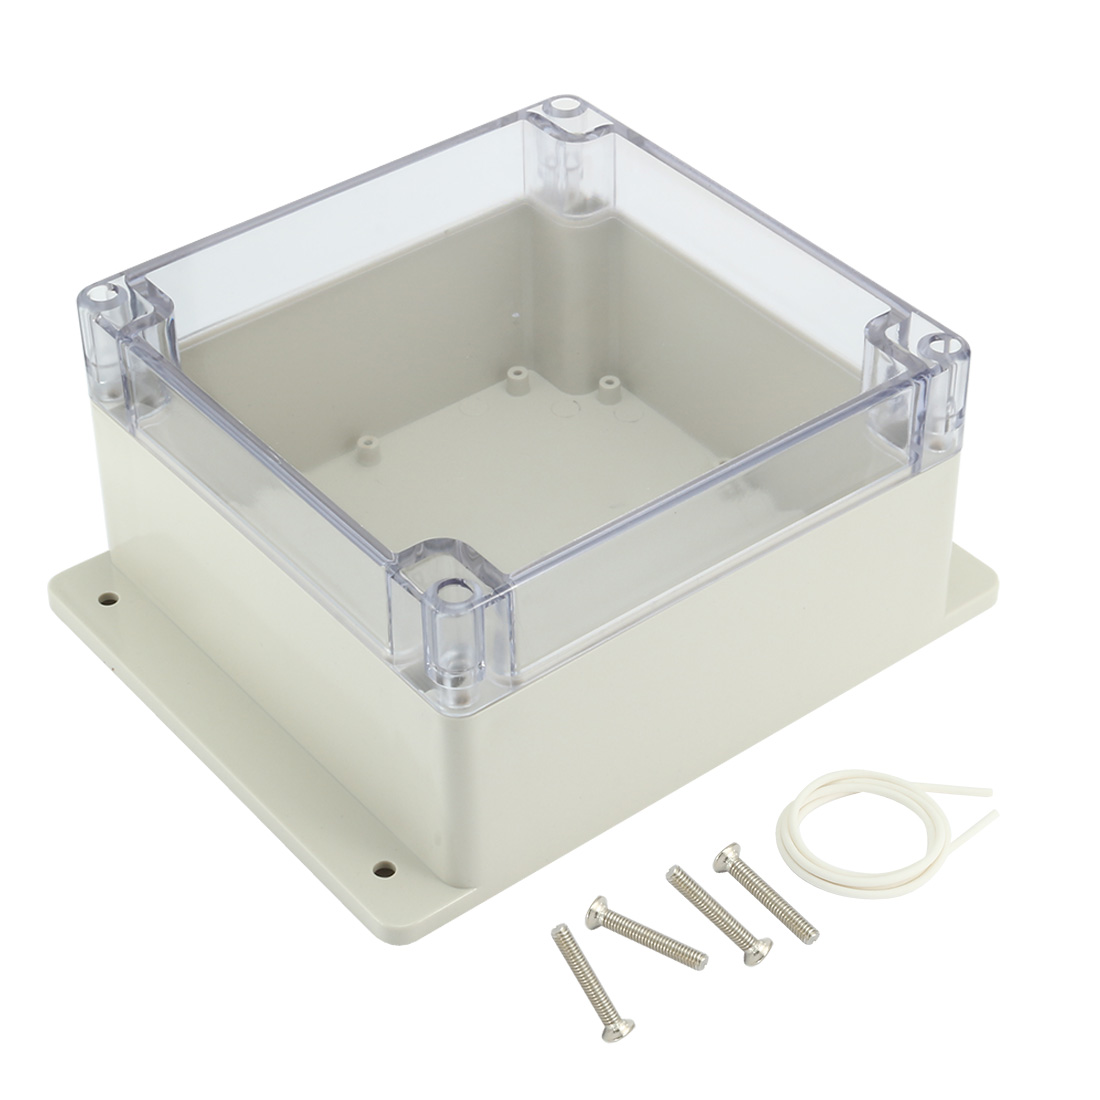 "6.3""x6.3""x3.54""(160mmx160mmx90mm) ABS Junction Box Universal Project Enclosure w PC Transparent Cover"